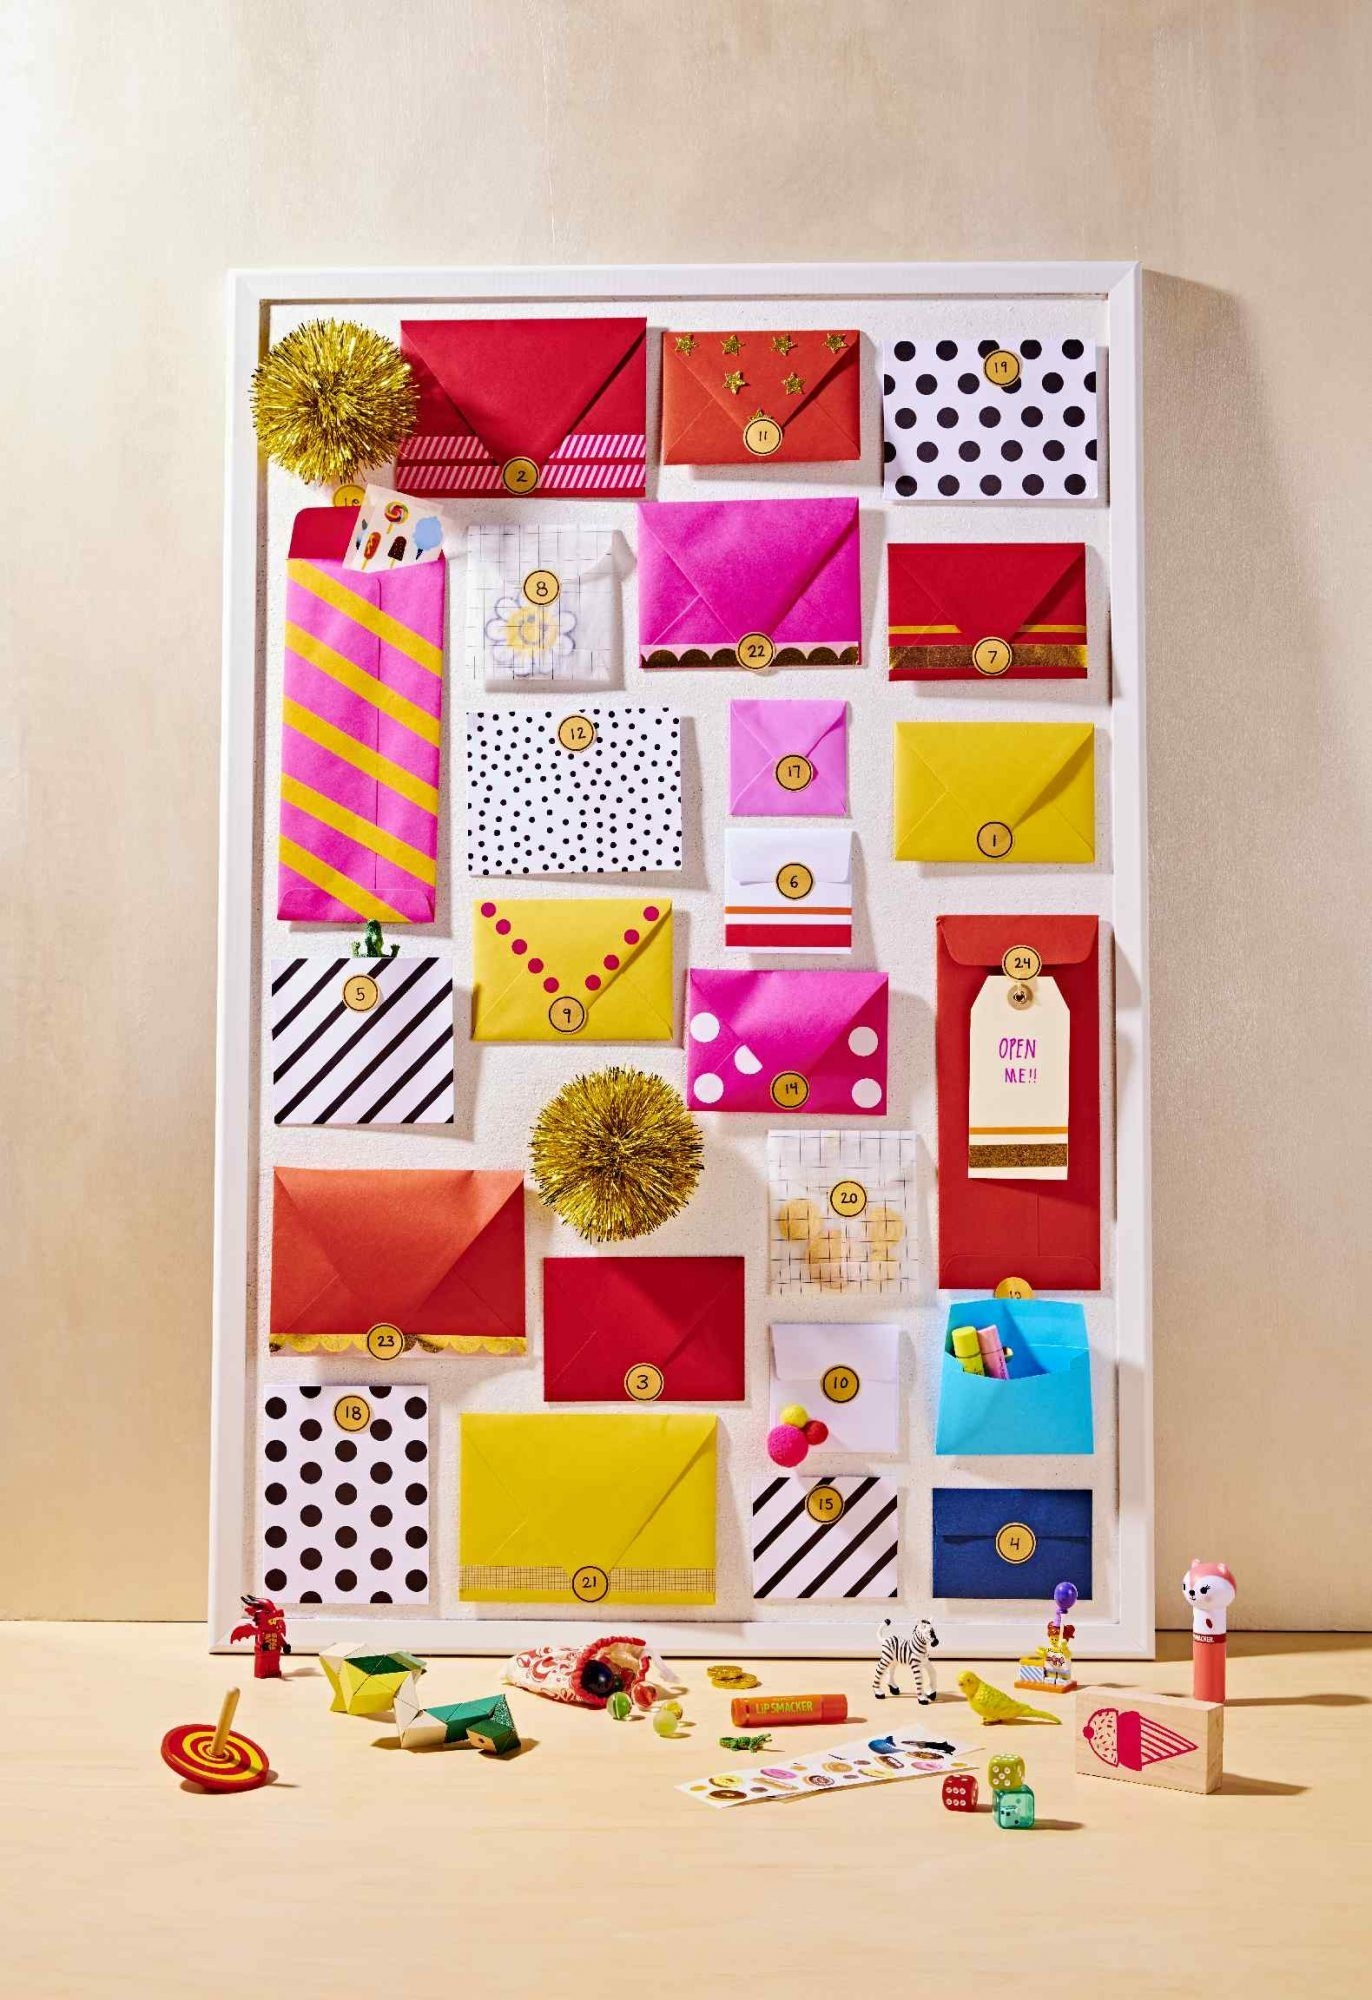 Make Your Own Advent Calendar To Countdown The Days 'til